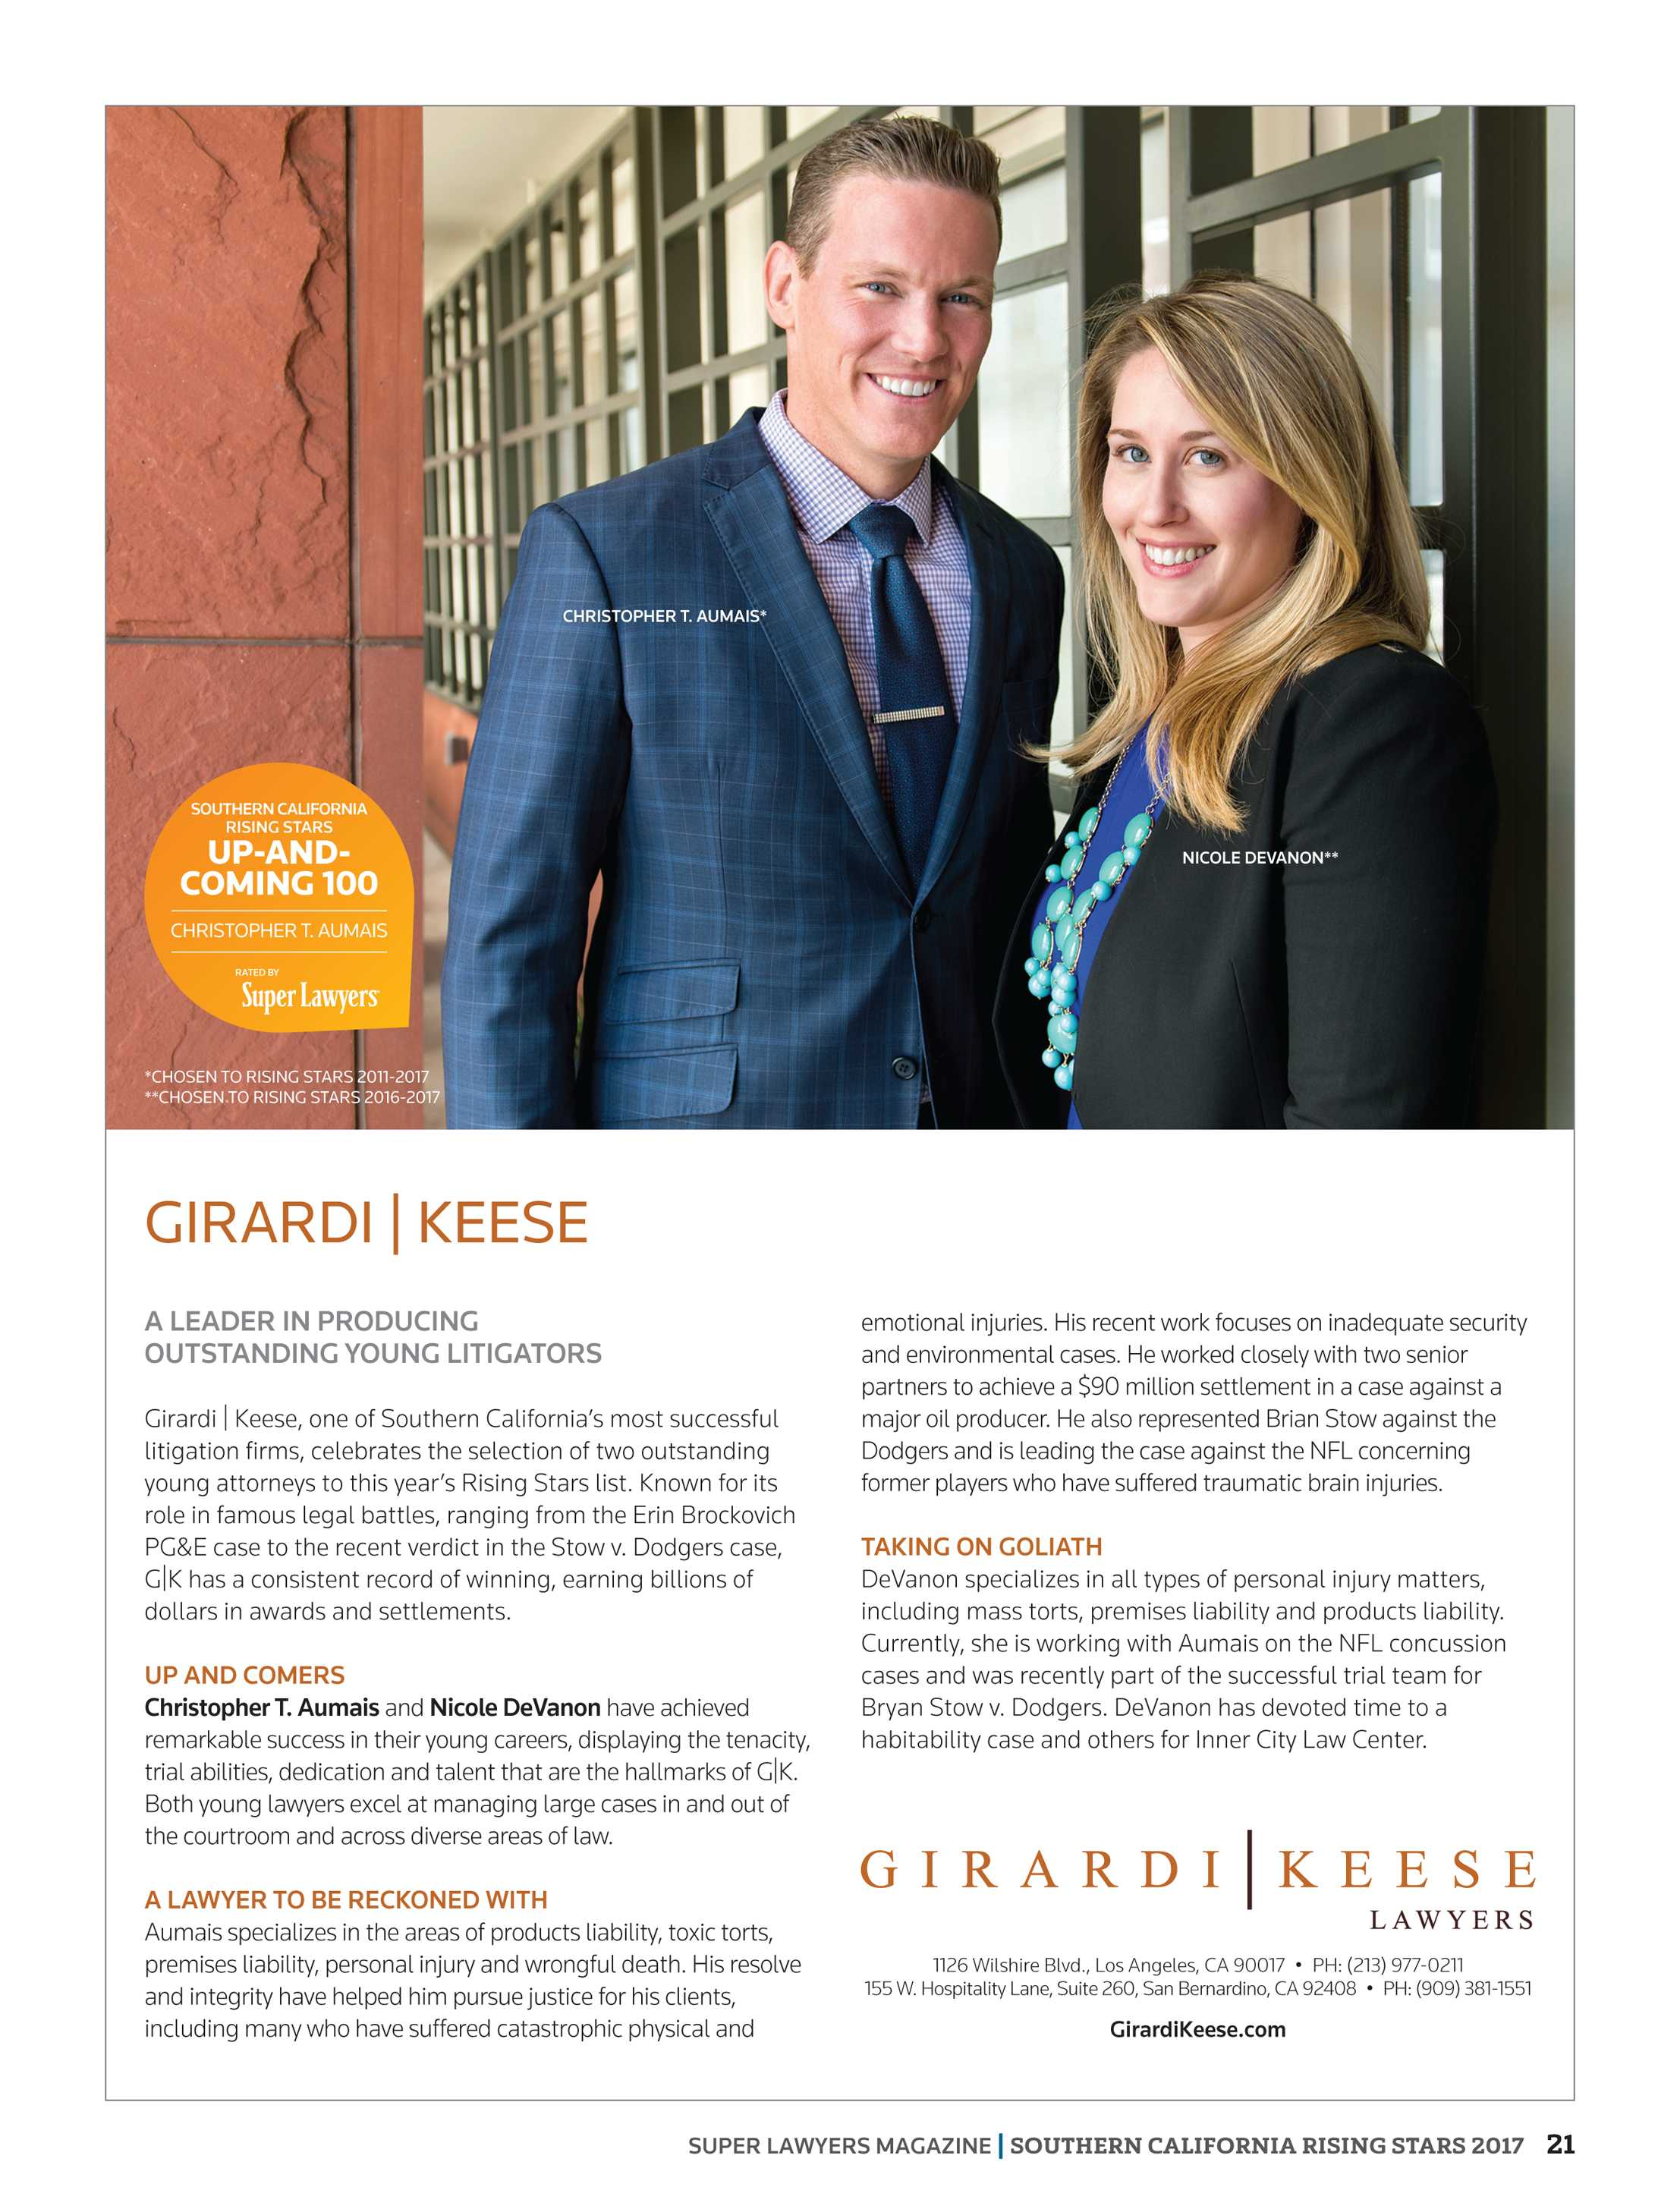 Super Lawyers - Southern California Rising Stars 2017 - page 21